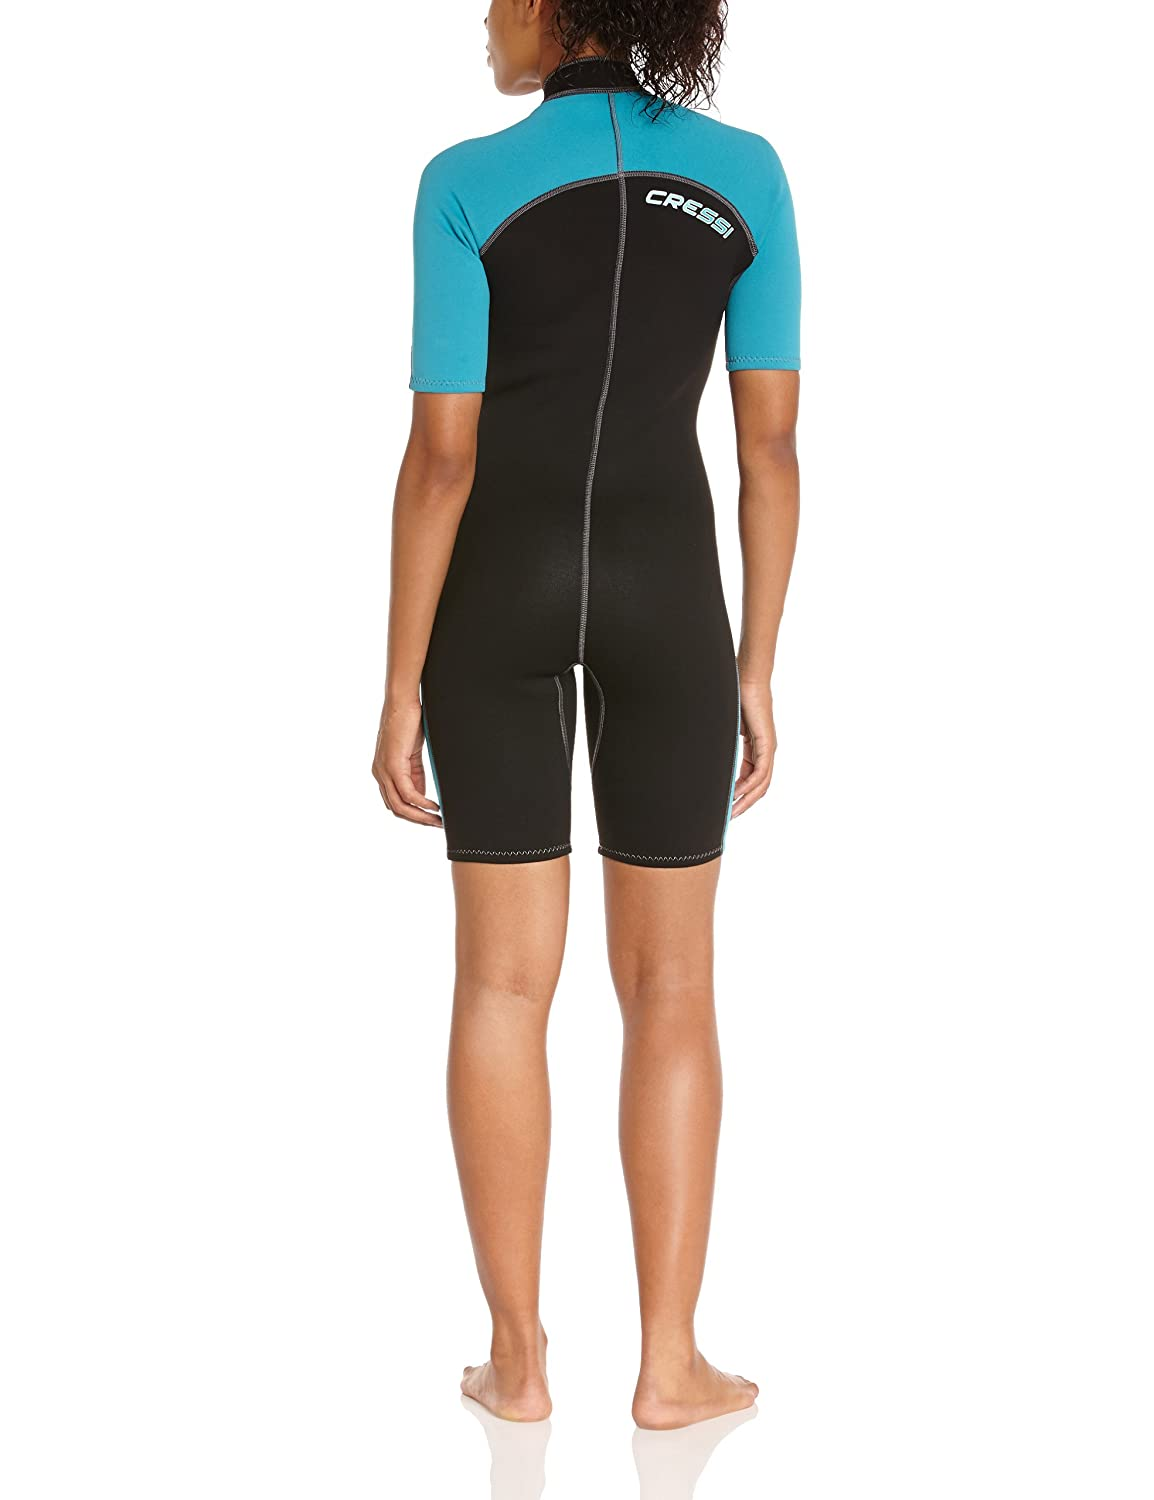 Womens Short Front Zip Wetsuit for Surfing, Snorkeling, Scuba Diving - Lido Short by Cressi: quality since 1946